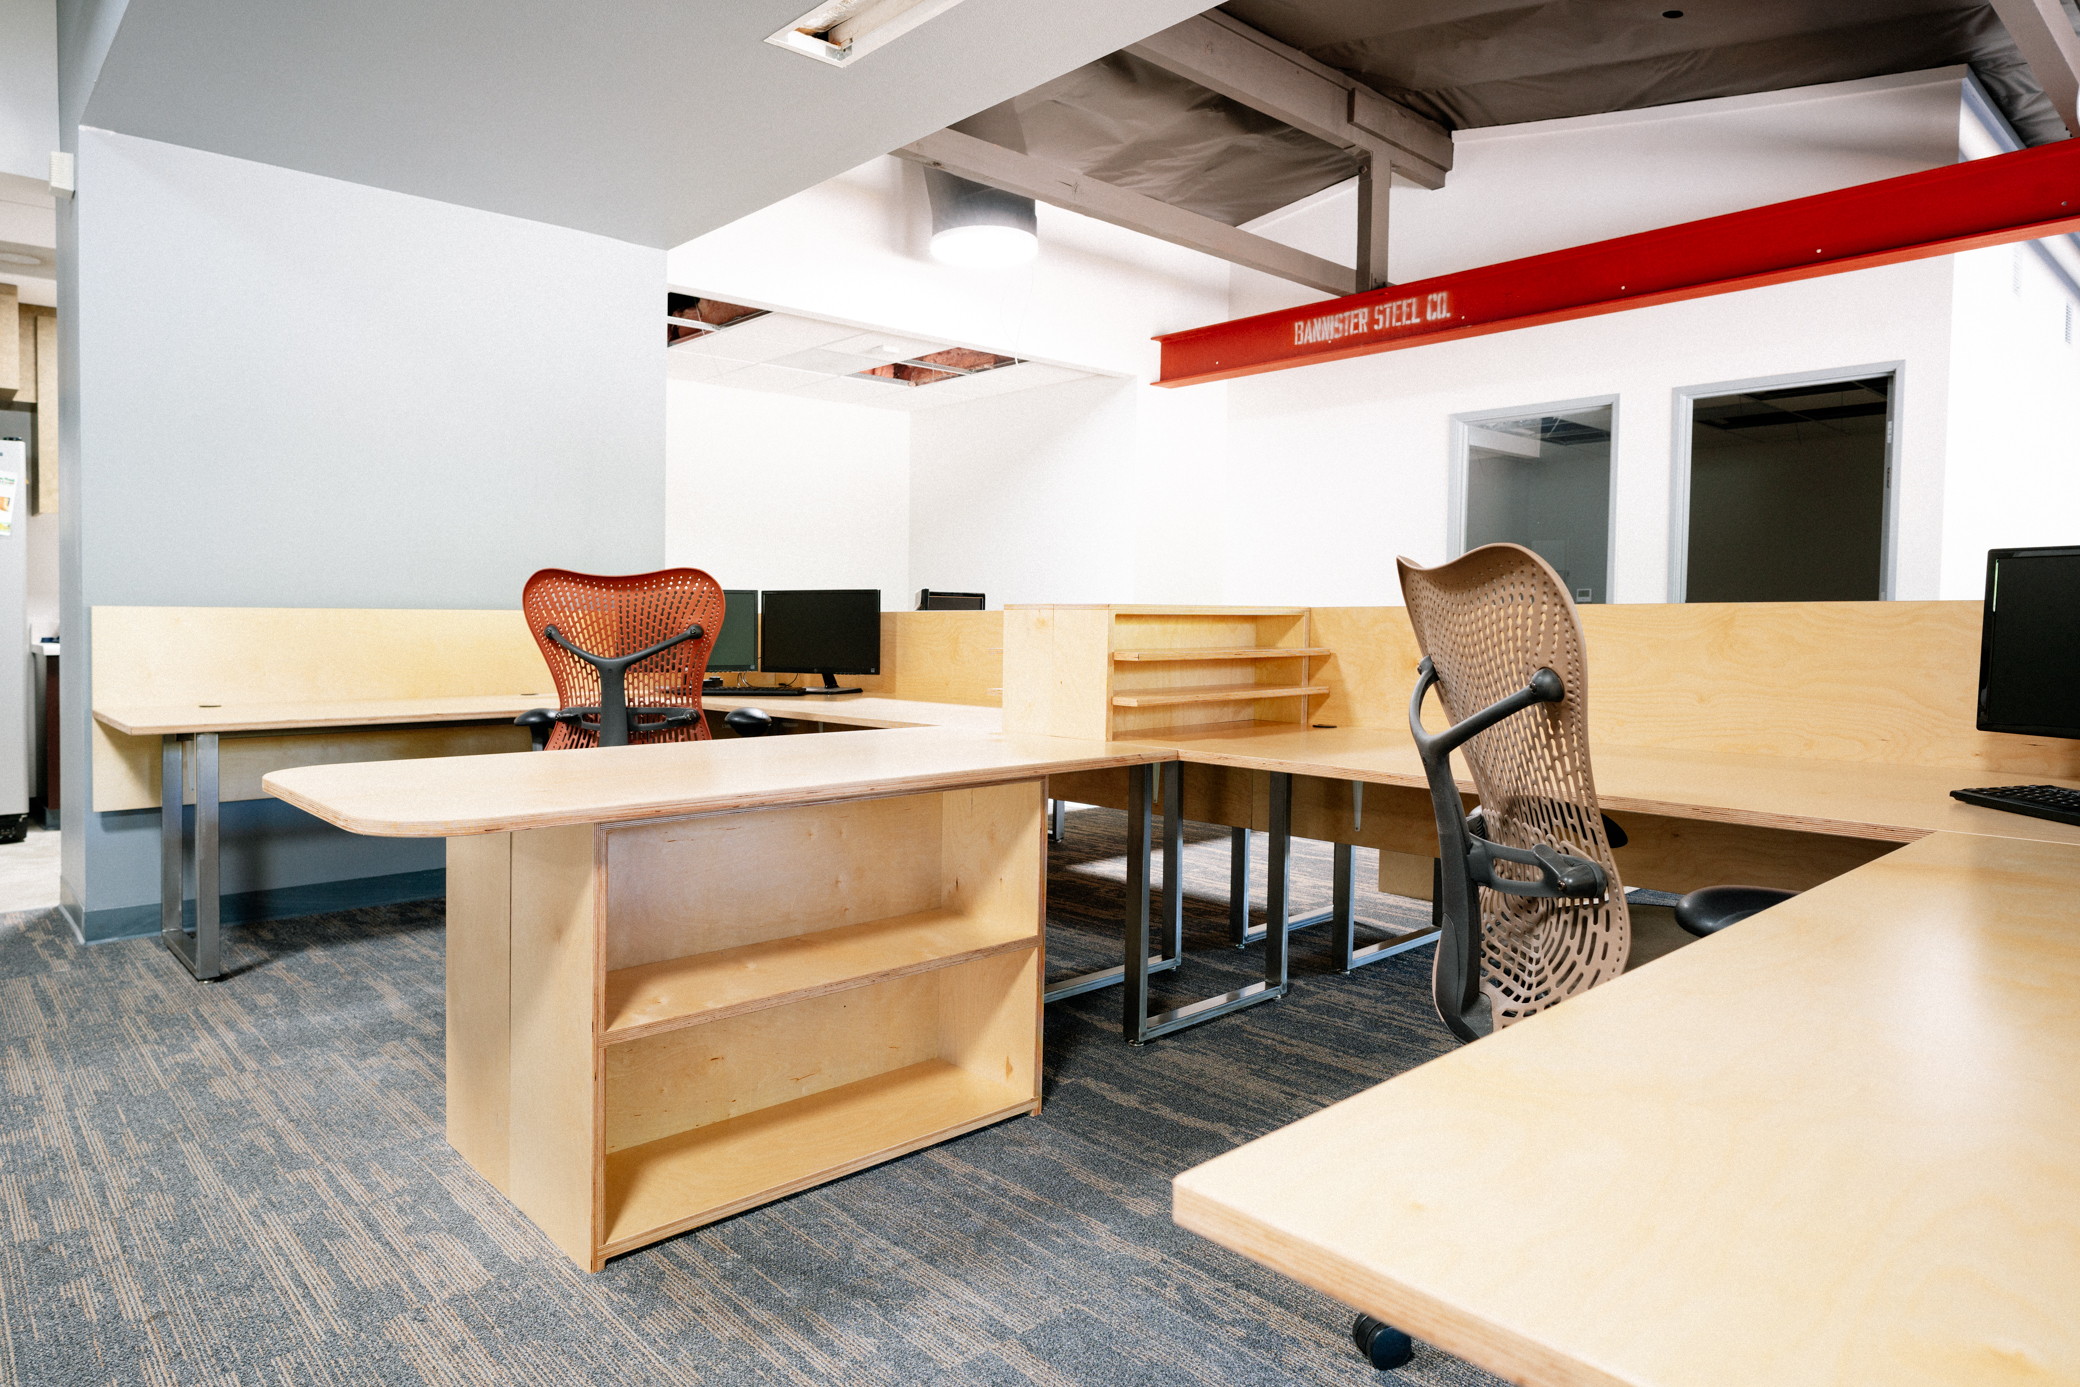 jka architecture - Owner:JKA ArchitectureJob:JKA New Office Furniture (Work Stations)Project Description: Furnish and install new custom made desktops/work stations with steel pipe legs and baltic birch plywood.